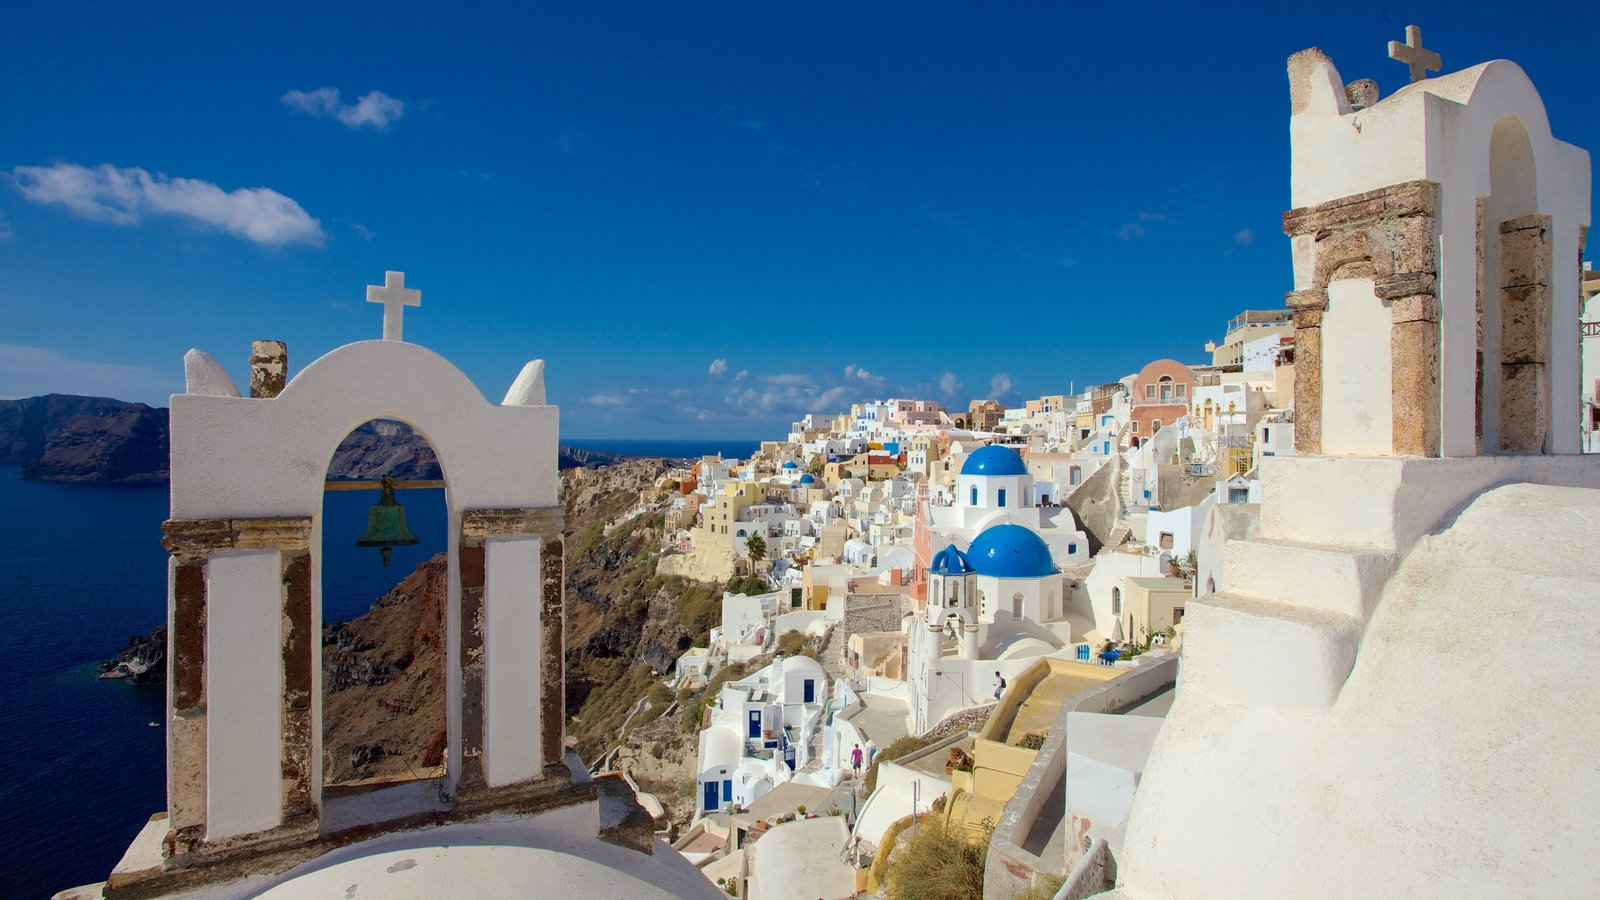 Oia featuring a church or cathedral and a coastal town